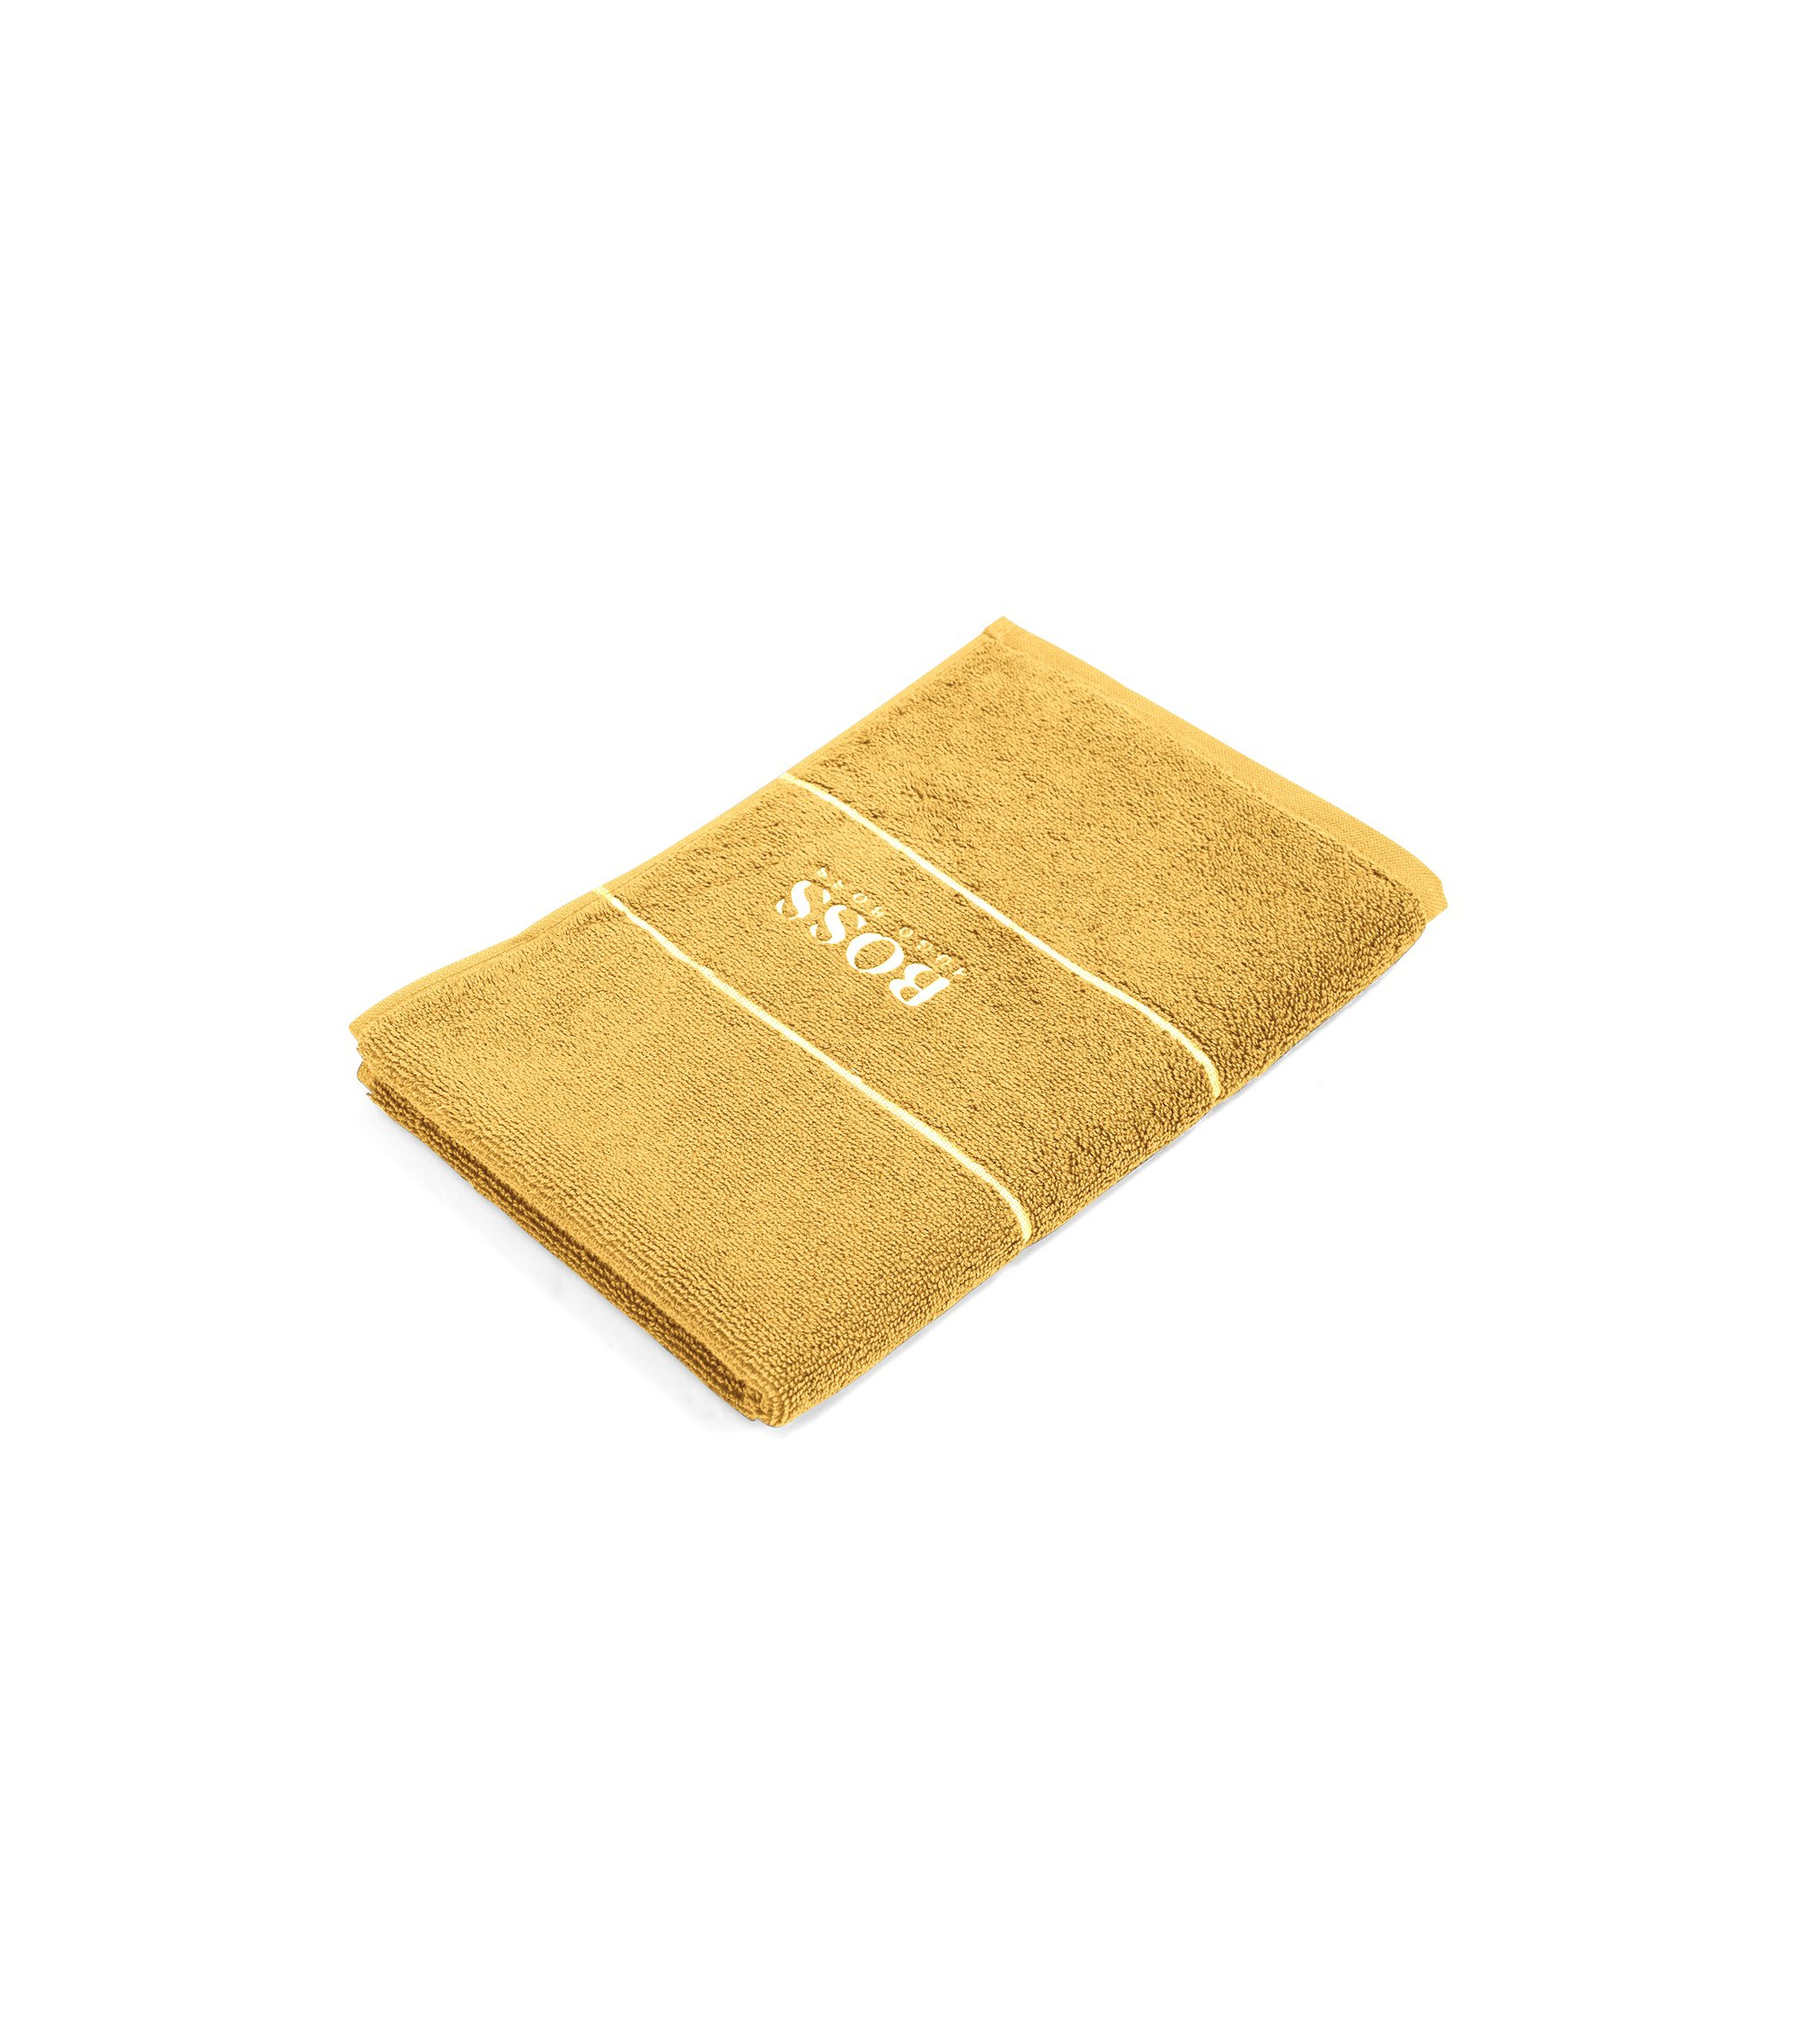 Finest Egyptian cotton guest towel with logo border, Gold